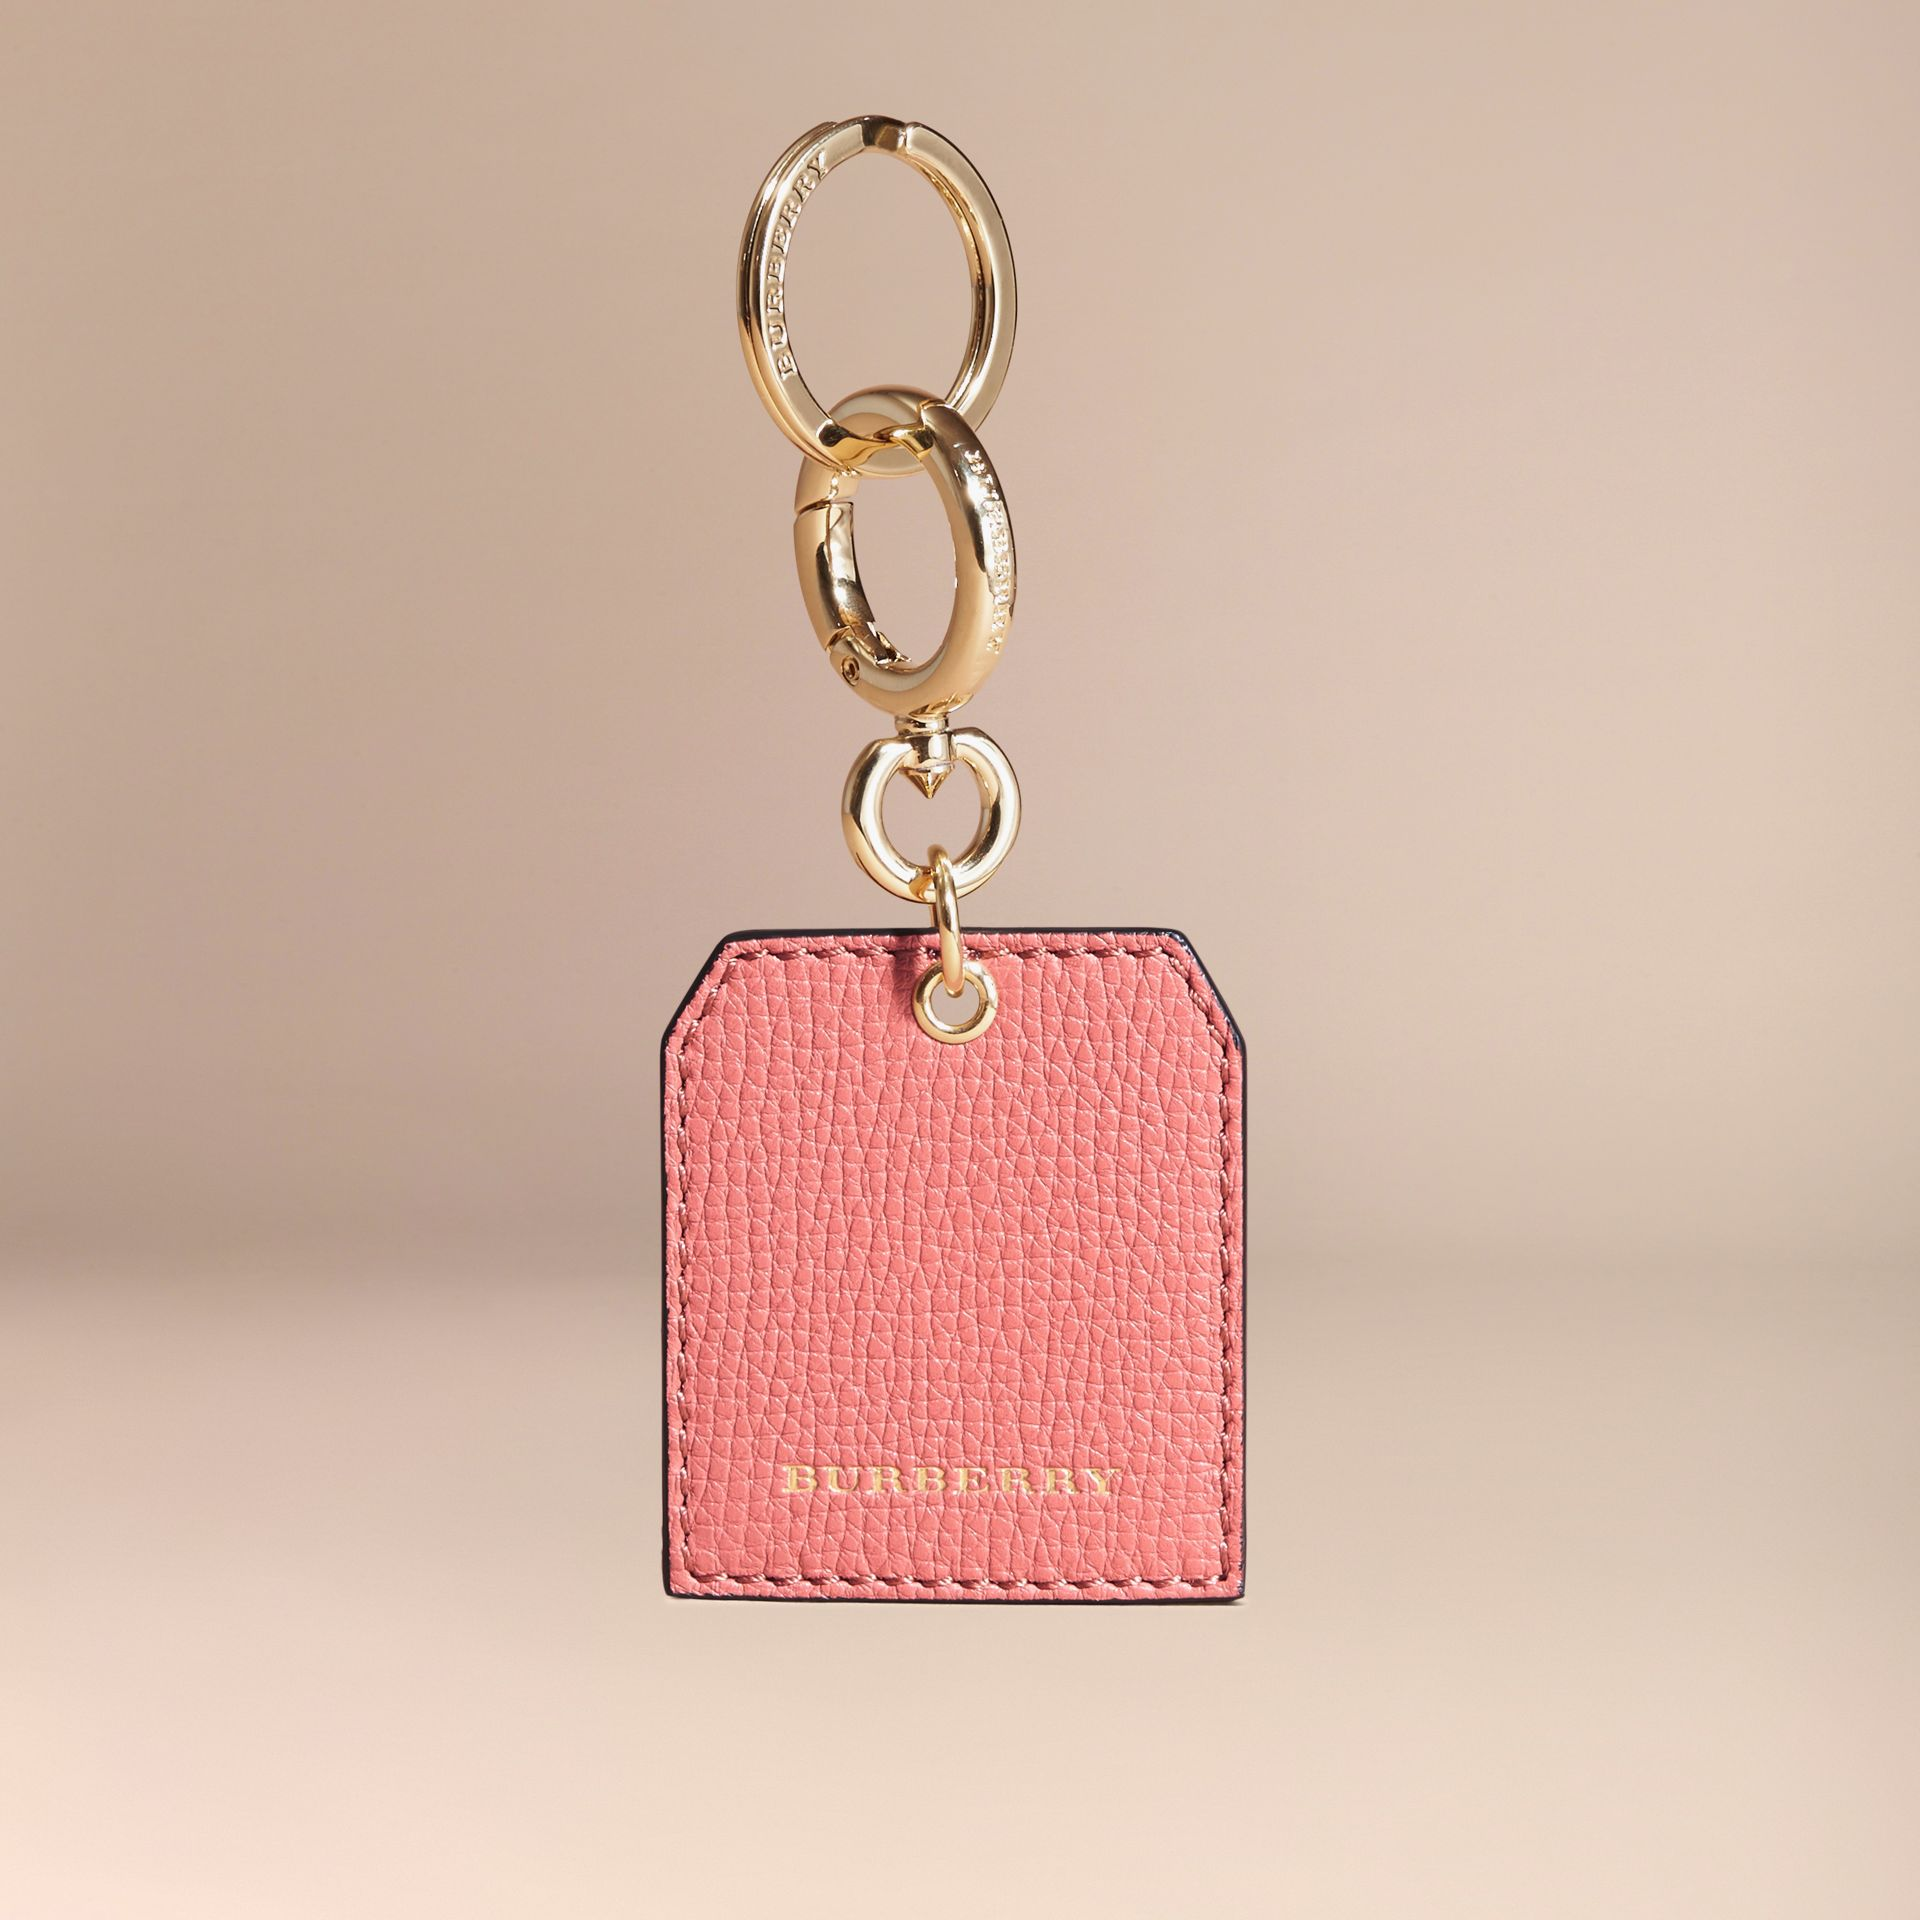 Grainy Leather Key Charm in Copper Pink - Women | Burberry Hong Kong - gallery image 5